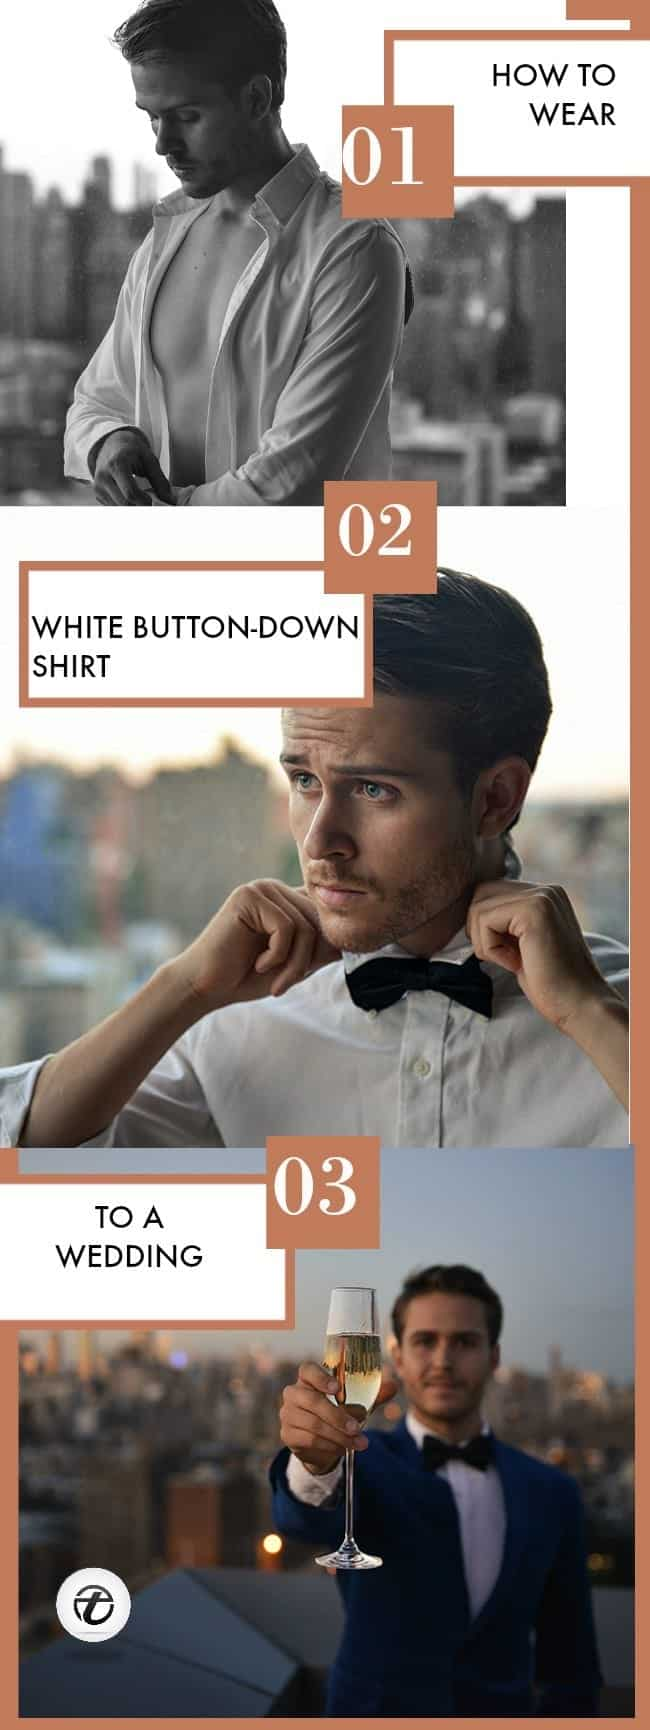 MEN-WHITE-BUTTON-DOWN-SHIRT-OUTFITS Men White Shirt Outfits-15 Ways to Wear White Button Down Shirts